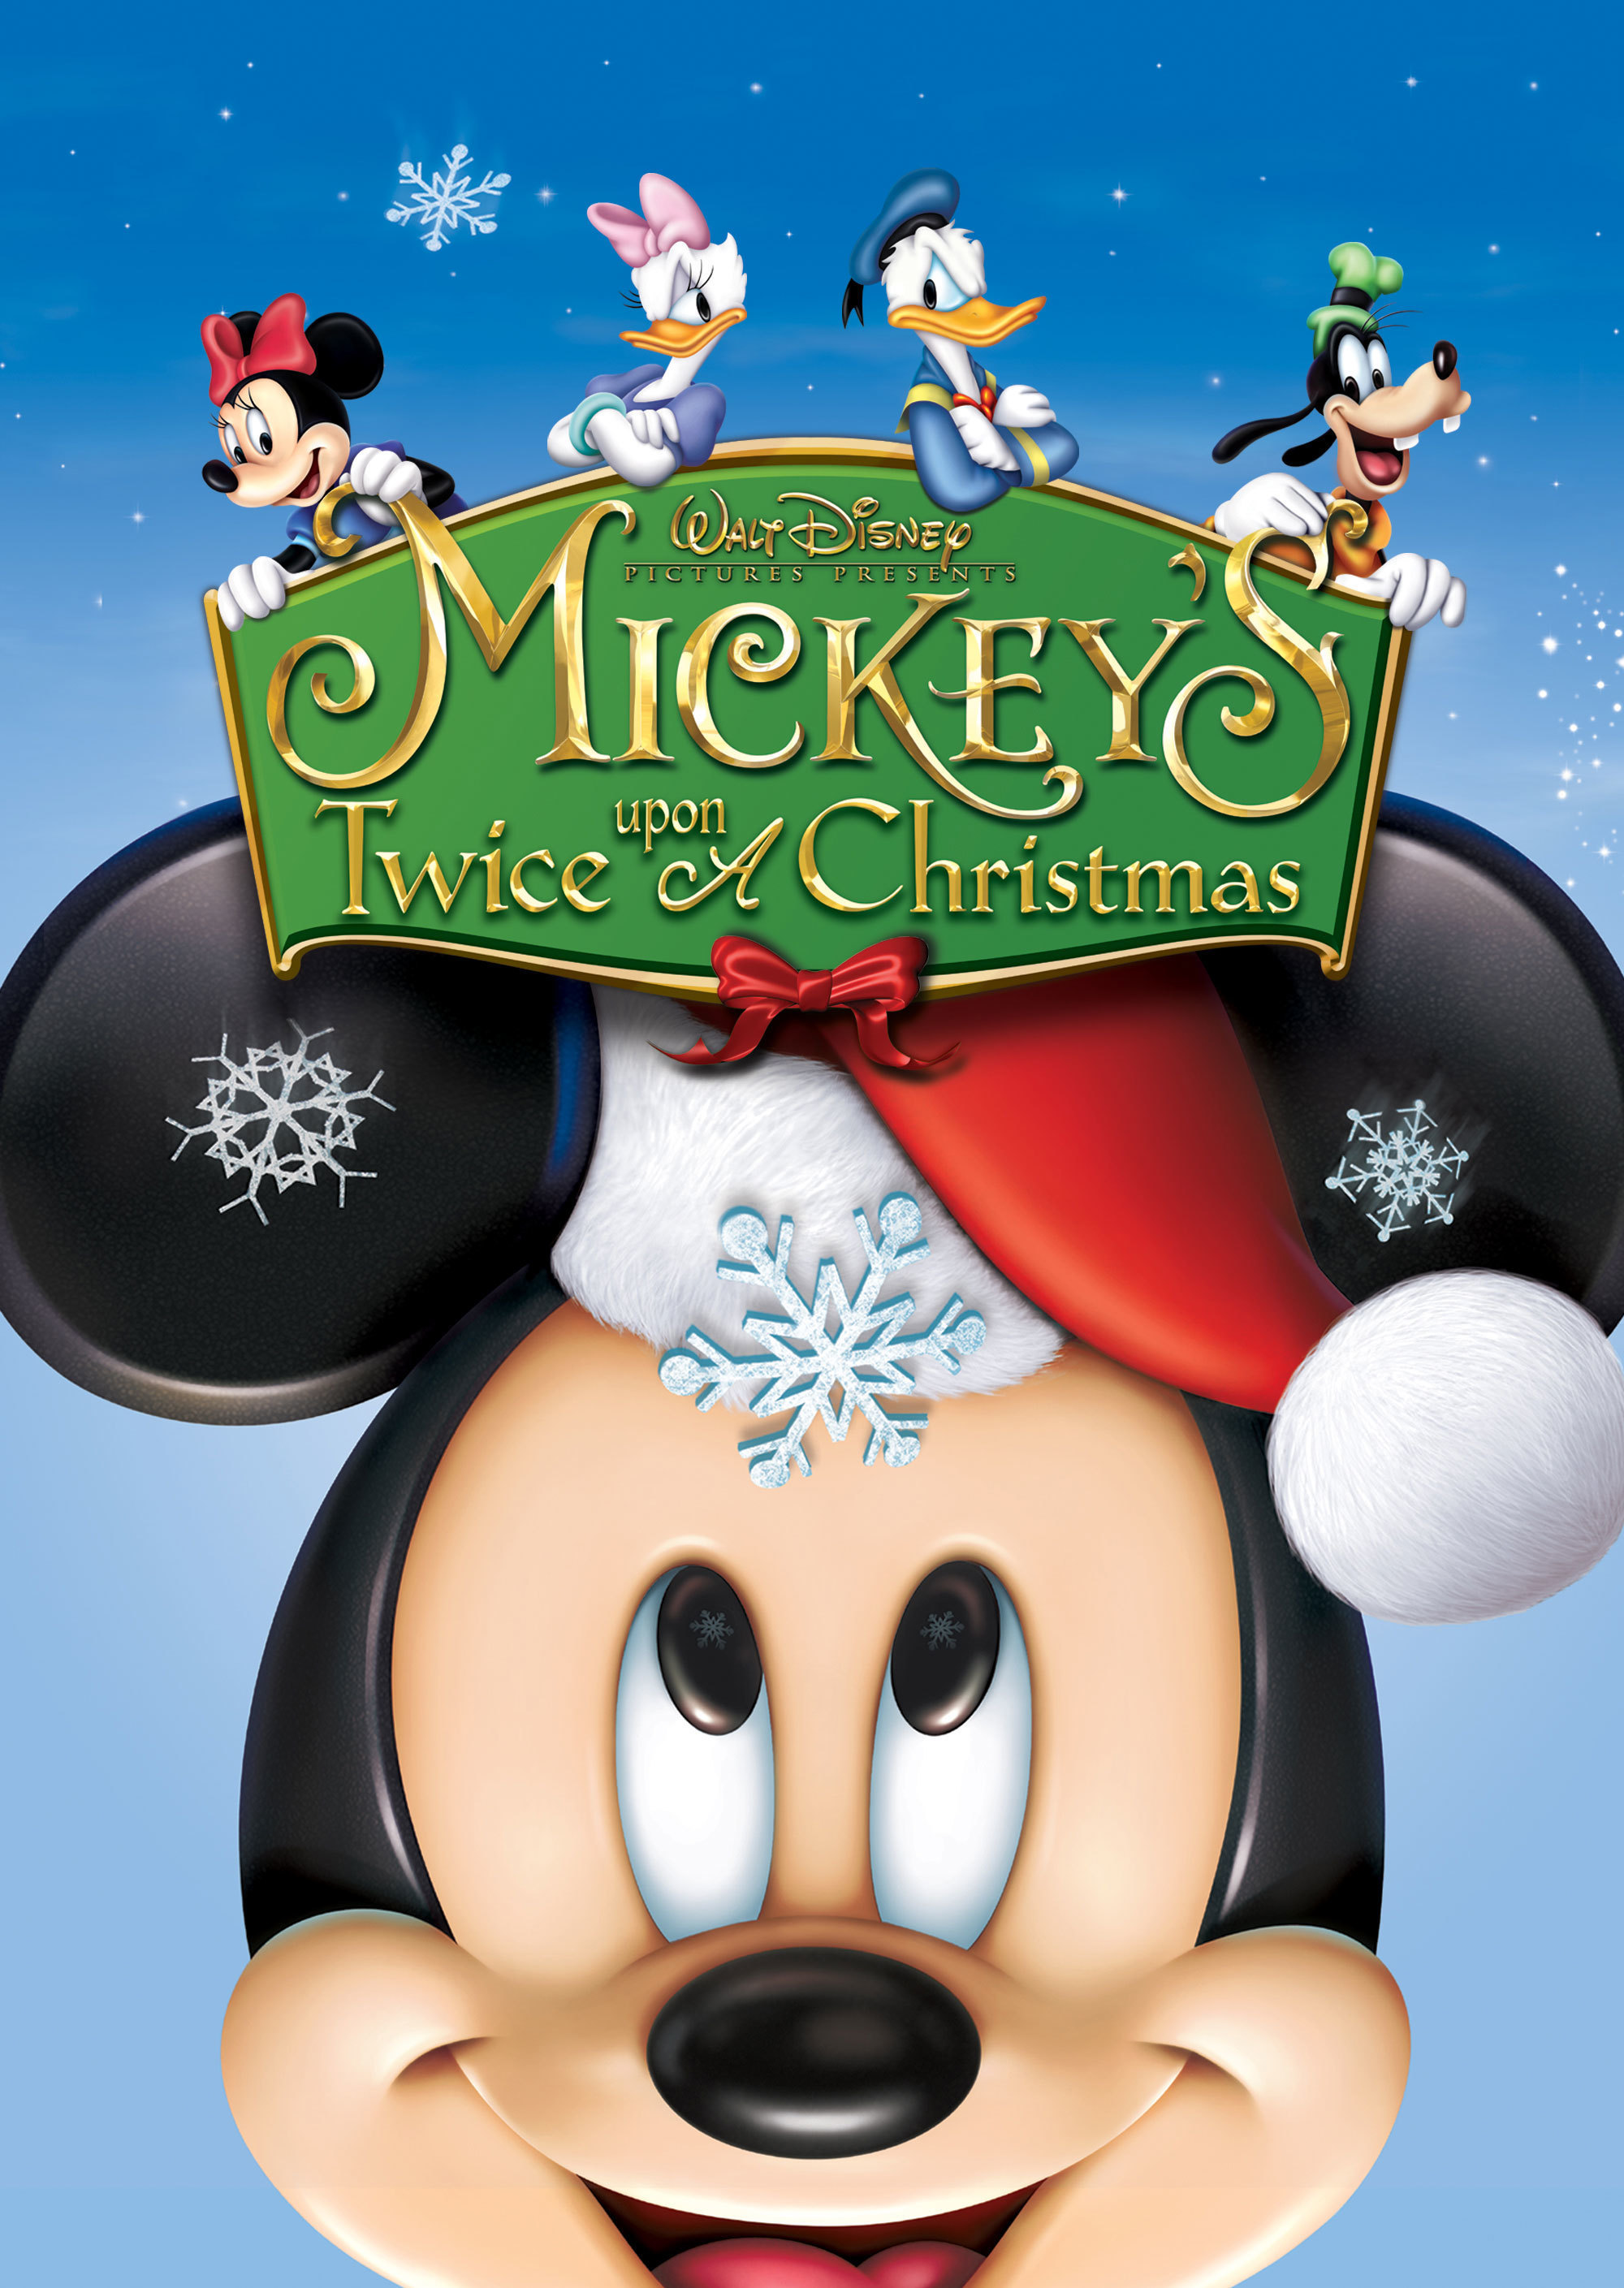 an unusual princeonce upon a dream lyrics 2014 where you are lyrics ariel lyrics by disneyget this from a library mickeys once upon a christmas - Once Upon A Christmas Full Movie